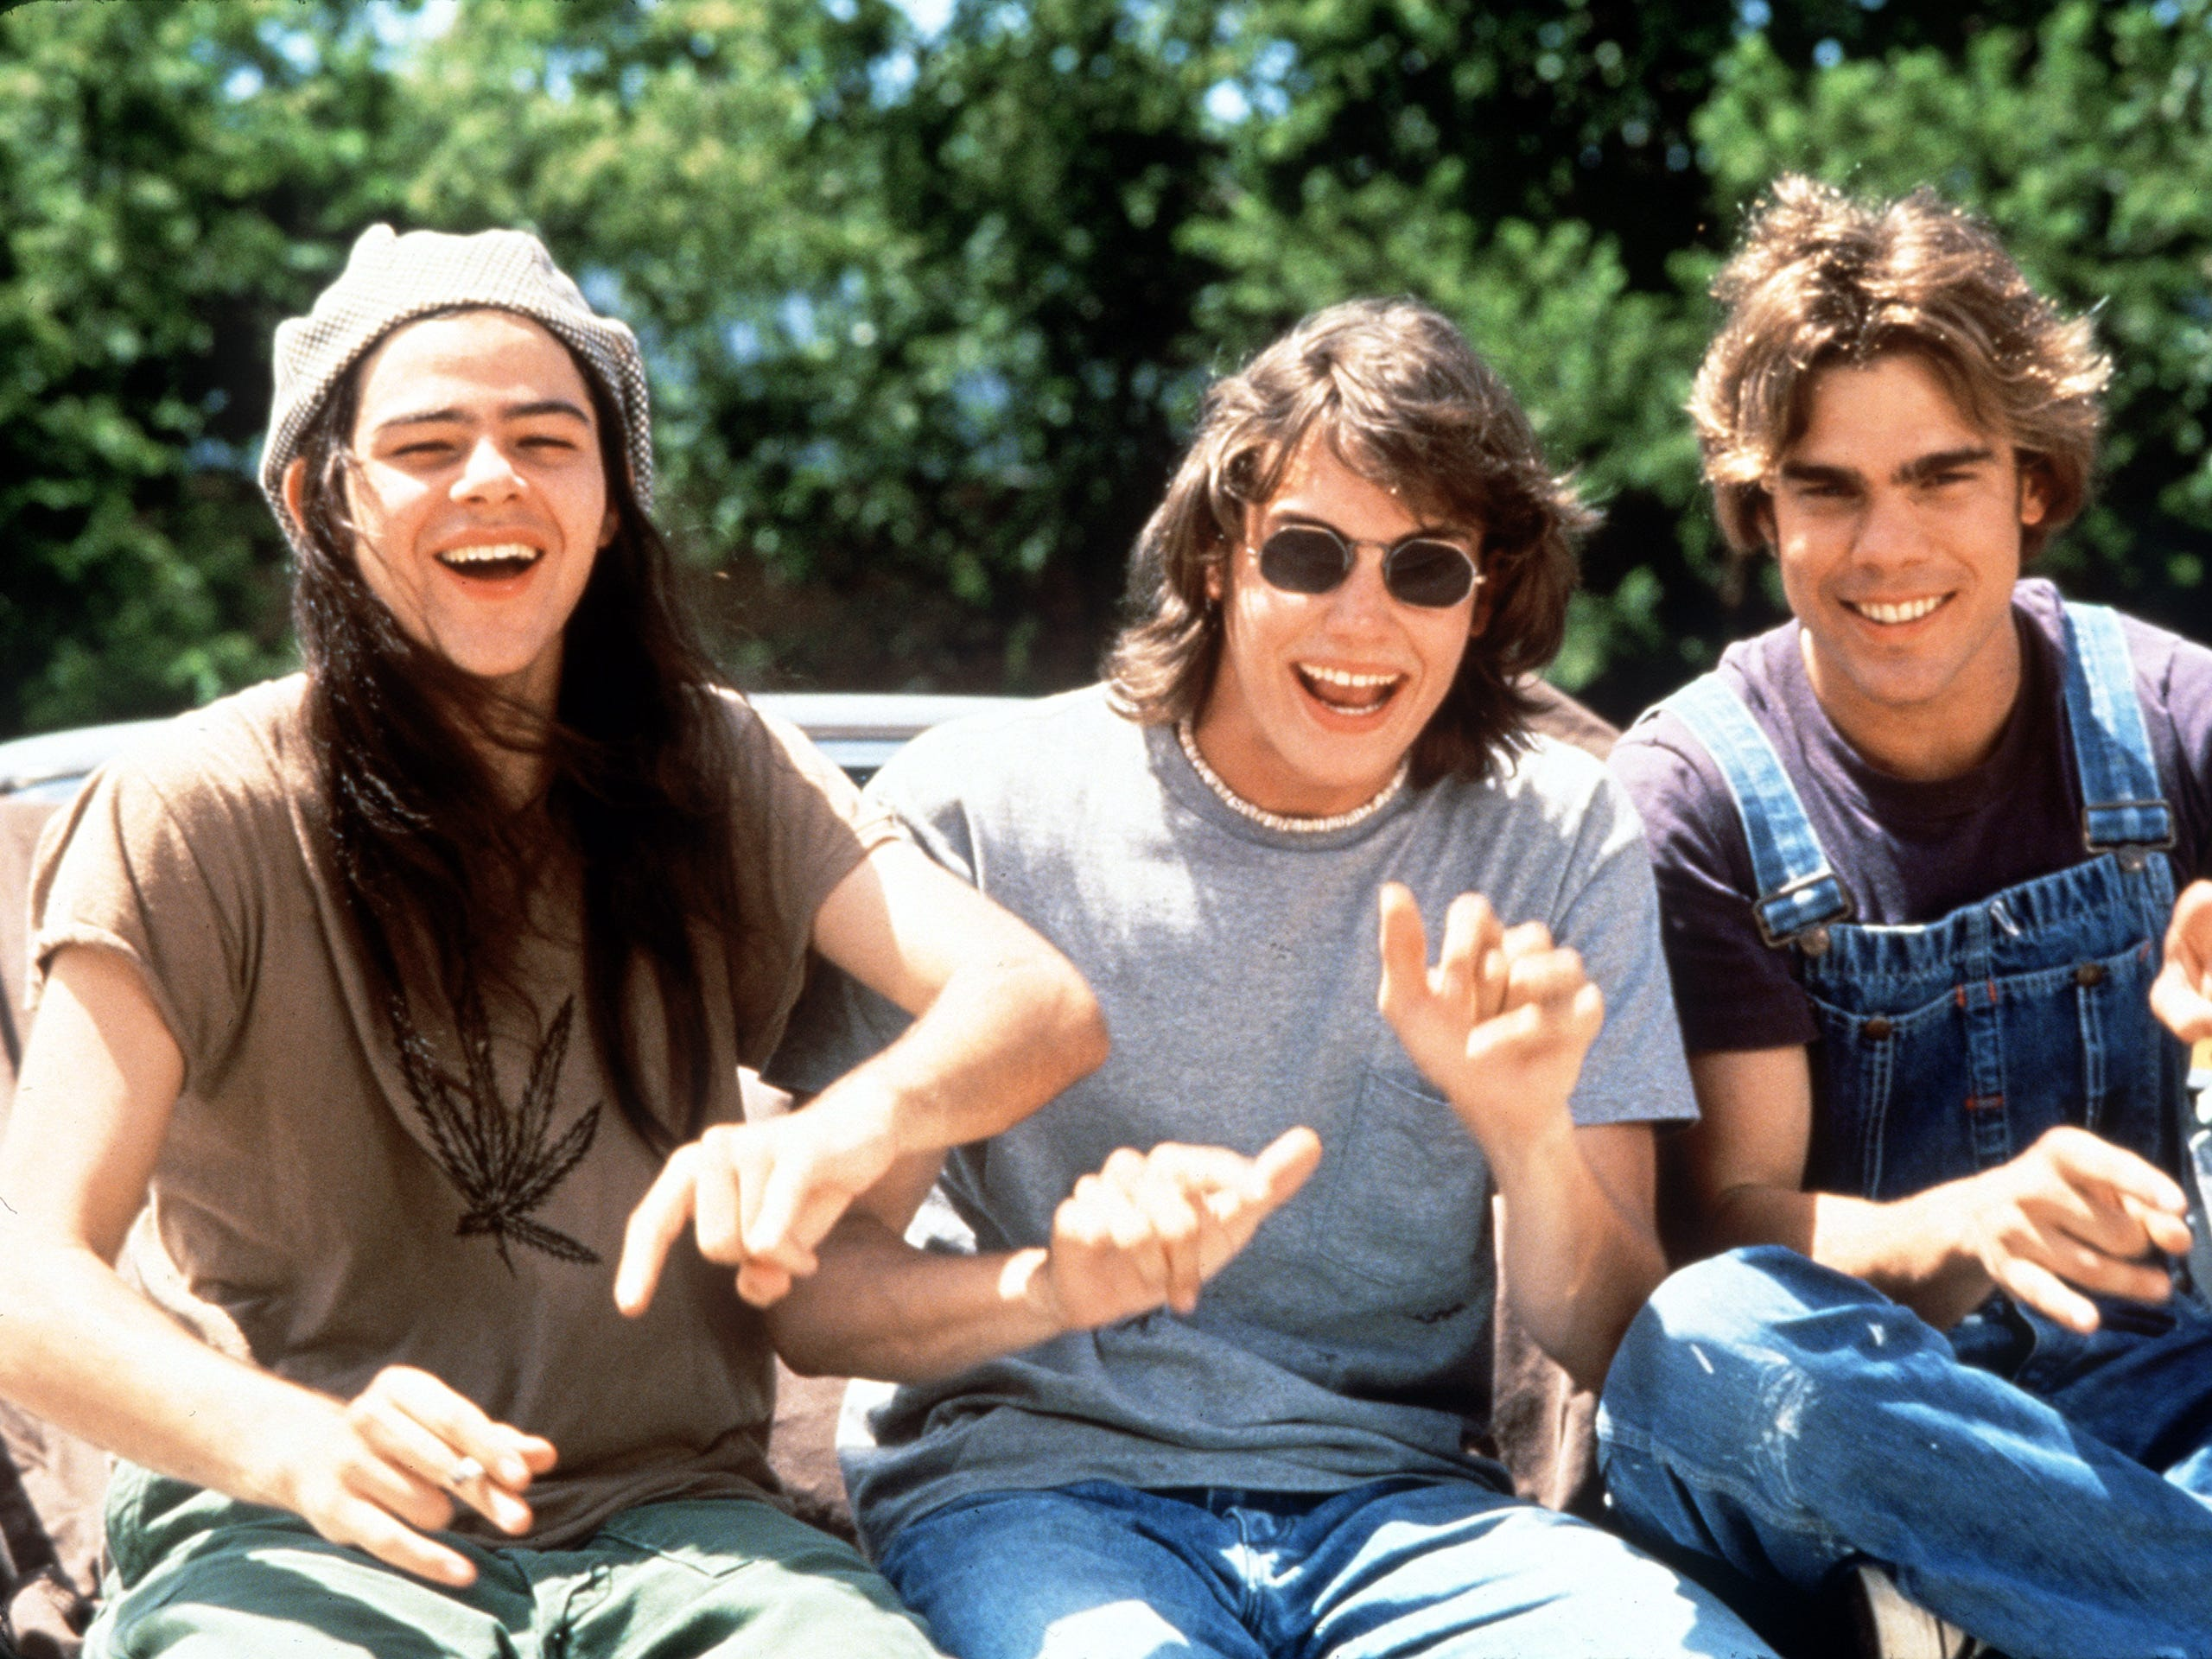 "Rory Cochrane, Jason London, and Sasha Jenson in Richard Linklater's 'Dazed and Confused,"" a Gramercy Pictures release. --- DATE TAKEN: rcvd 1998  By Gabor Szitanyi   Gramercy Pictures  , Source: Gramercy Pictures        HO      - handout ORG XMIT: UT75135"